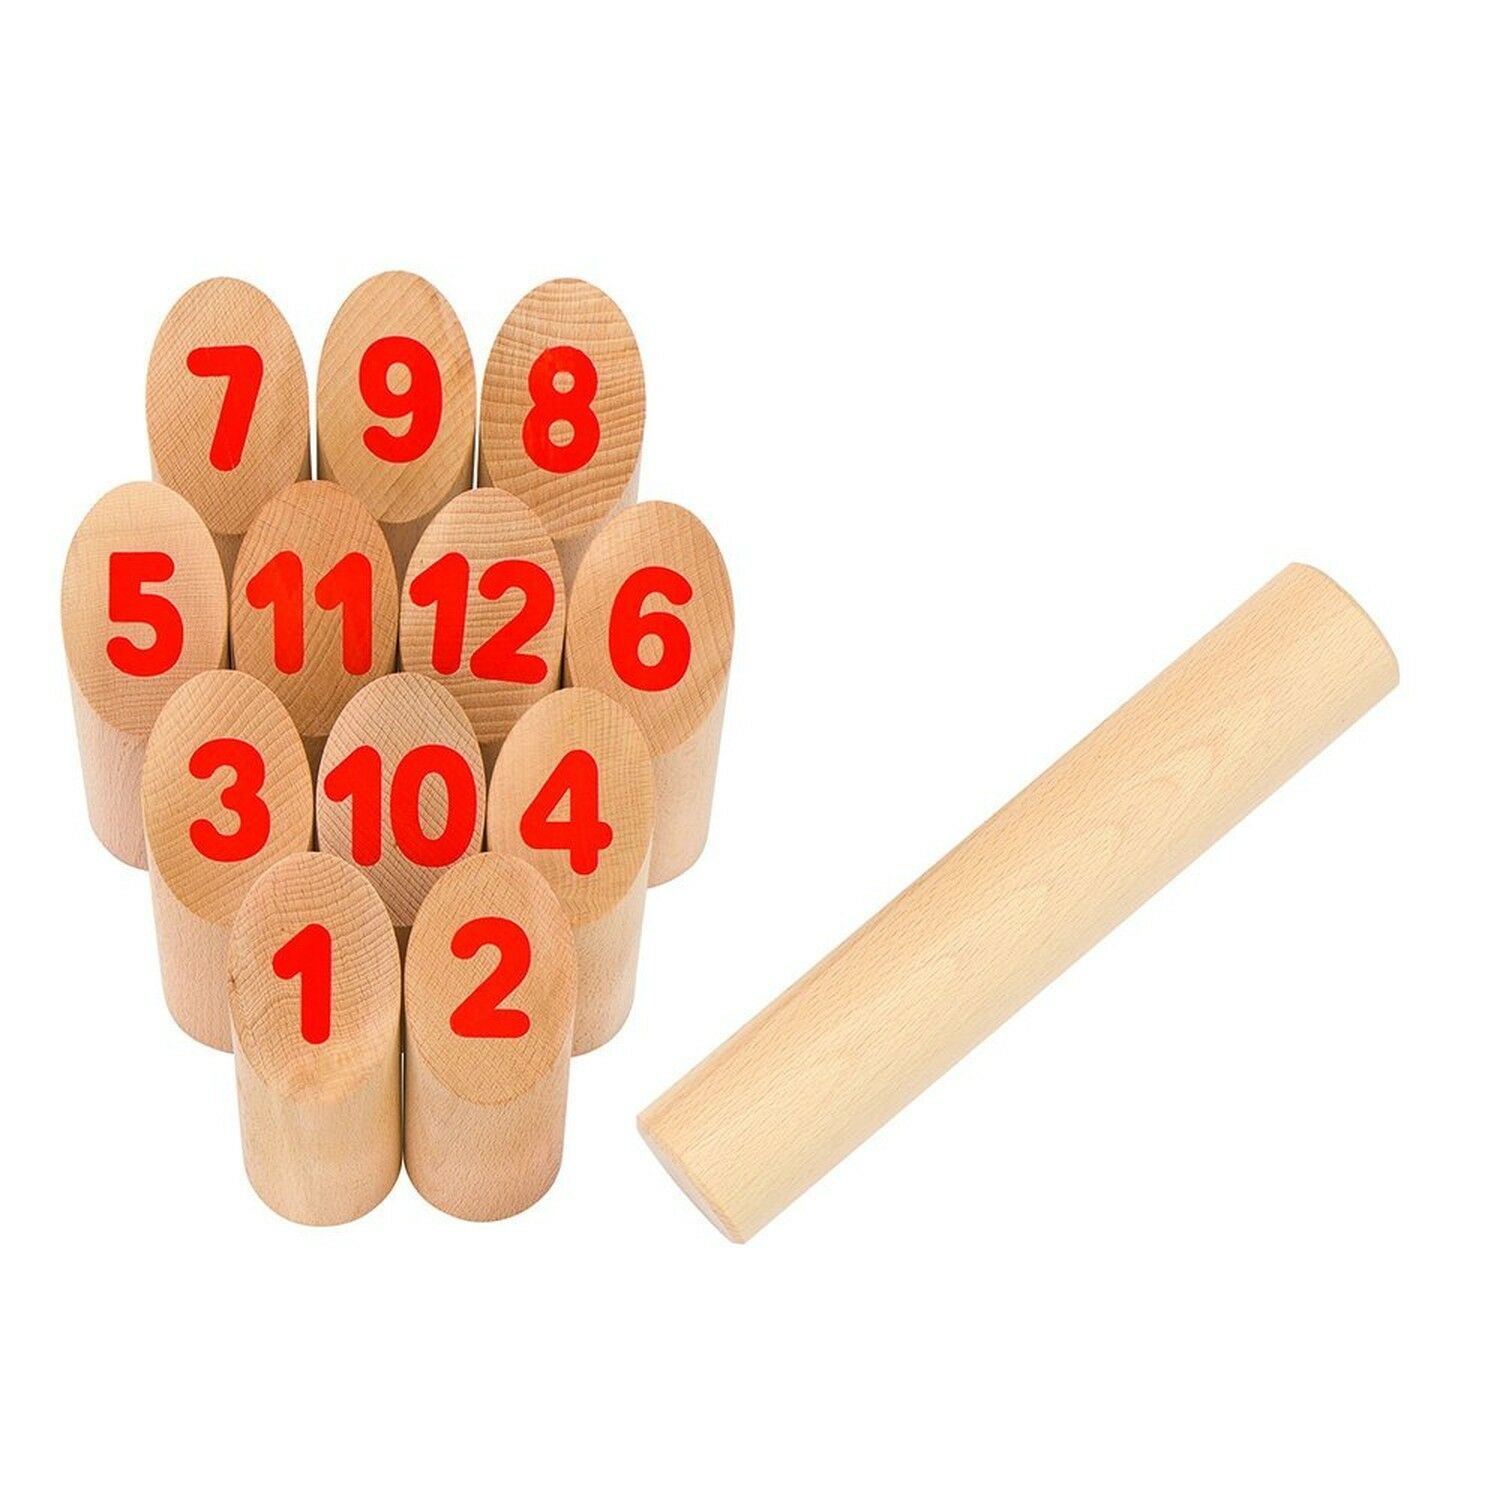 GoKi Viking Game Number Kubb in a Cotton Bag